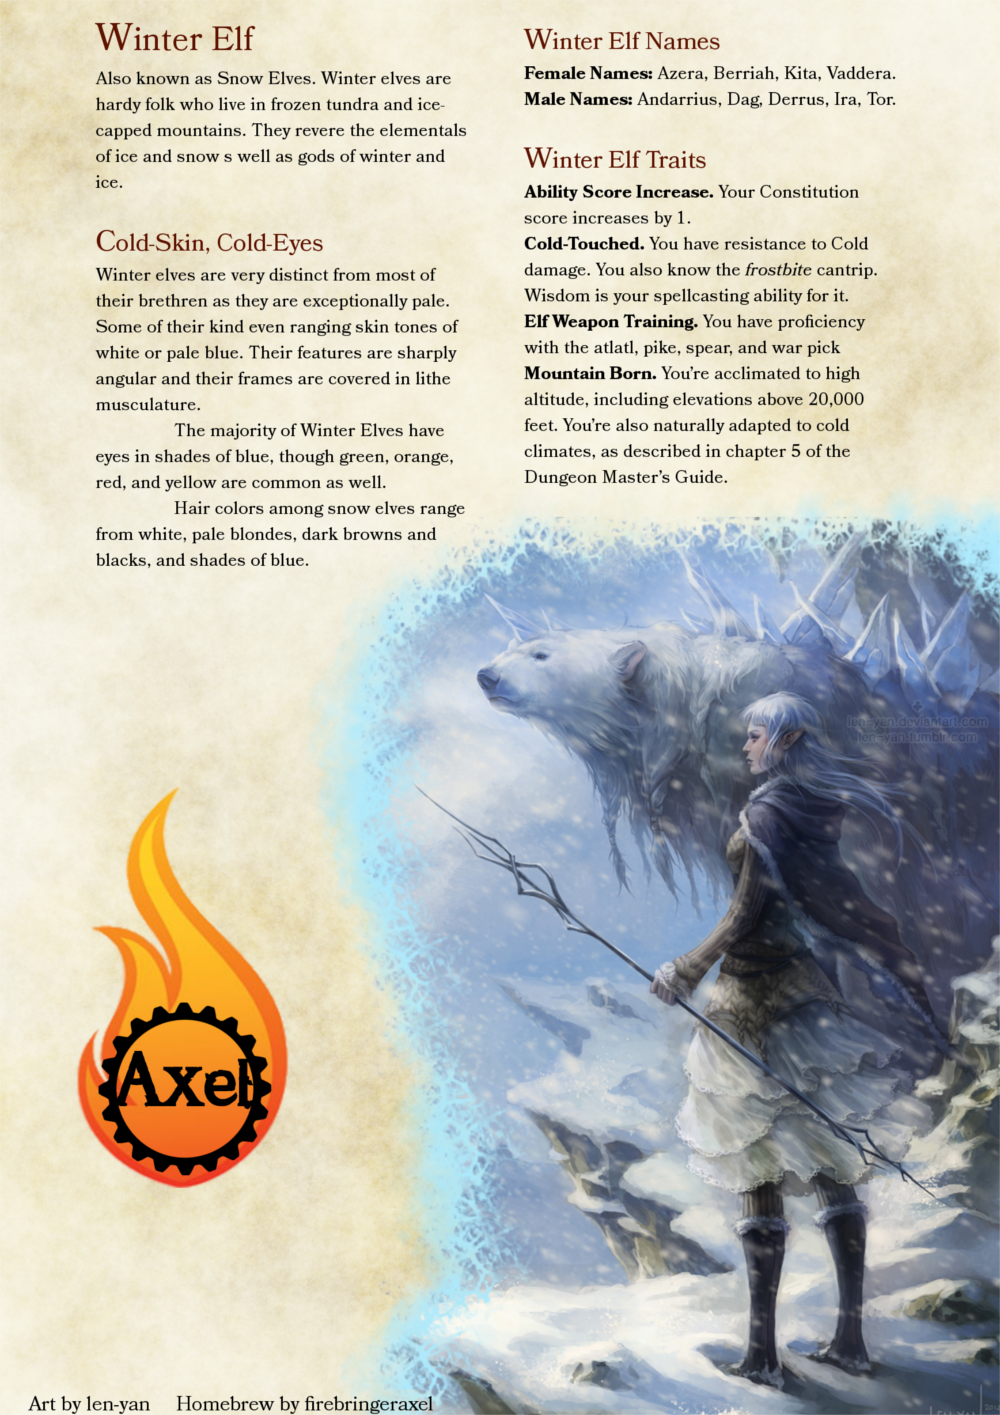 Winter Elf: DnD 5e Homebrew | Paracosm | Dungeons, dragons